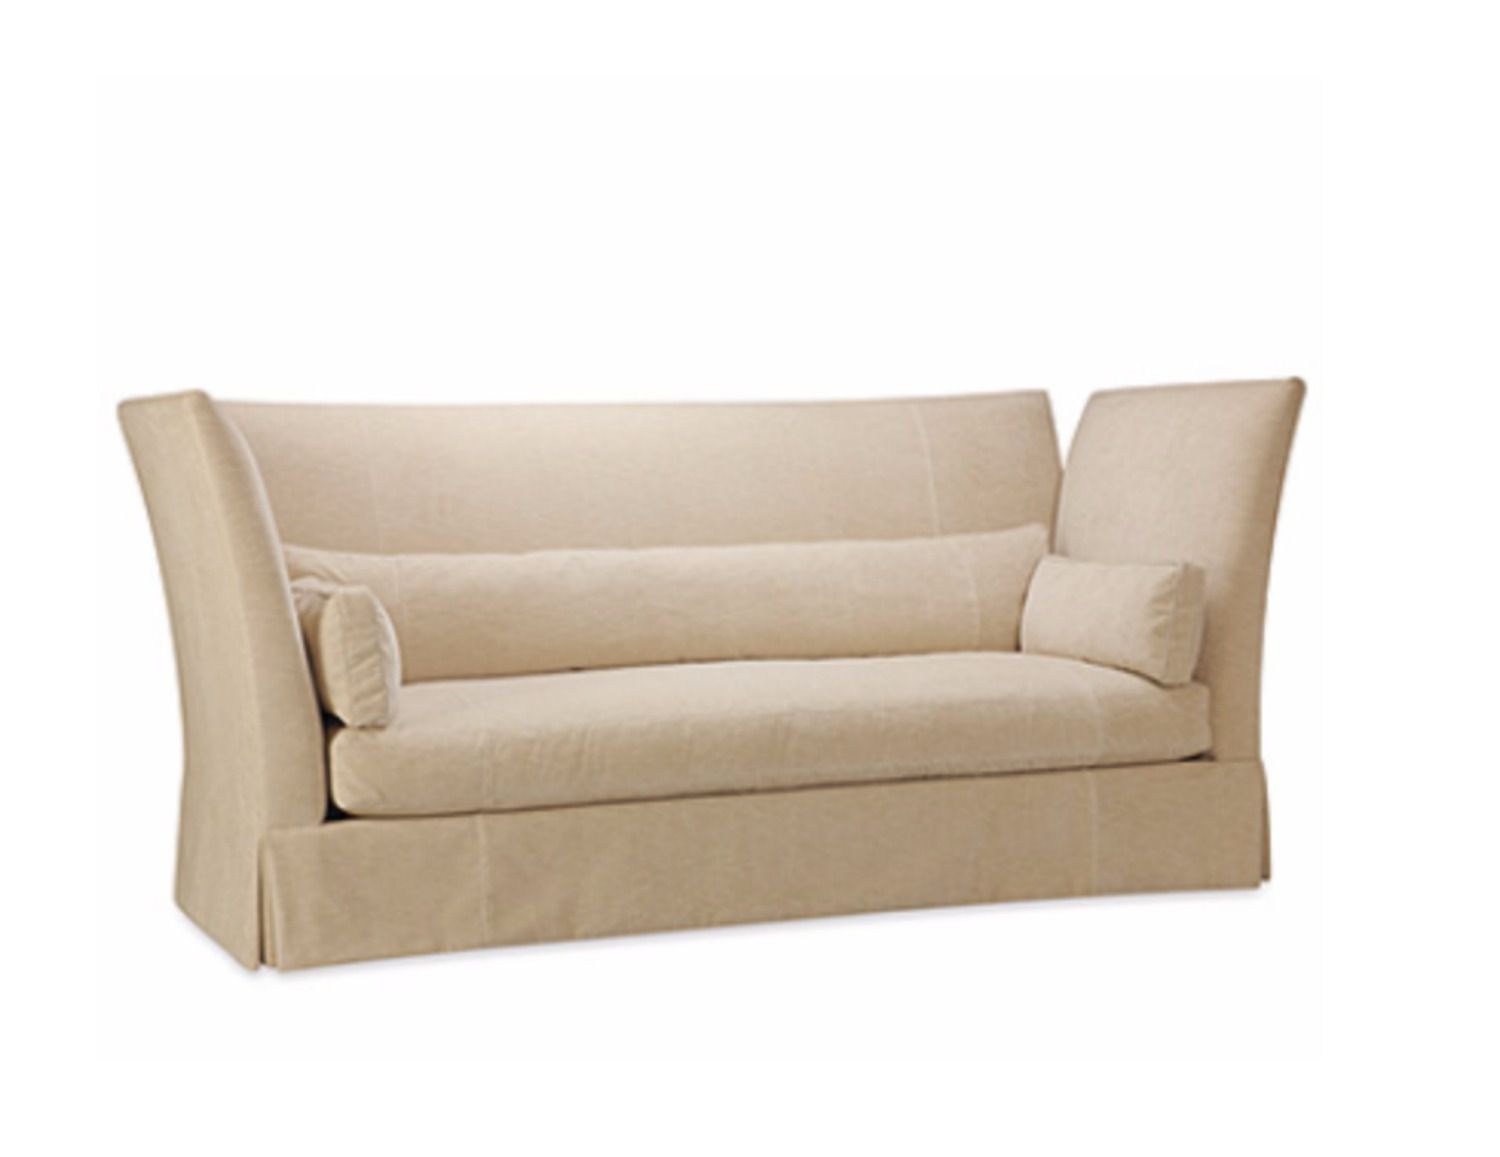 Sagging Ridge Sofa de Lee Industries